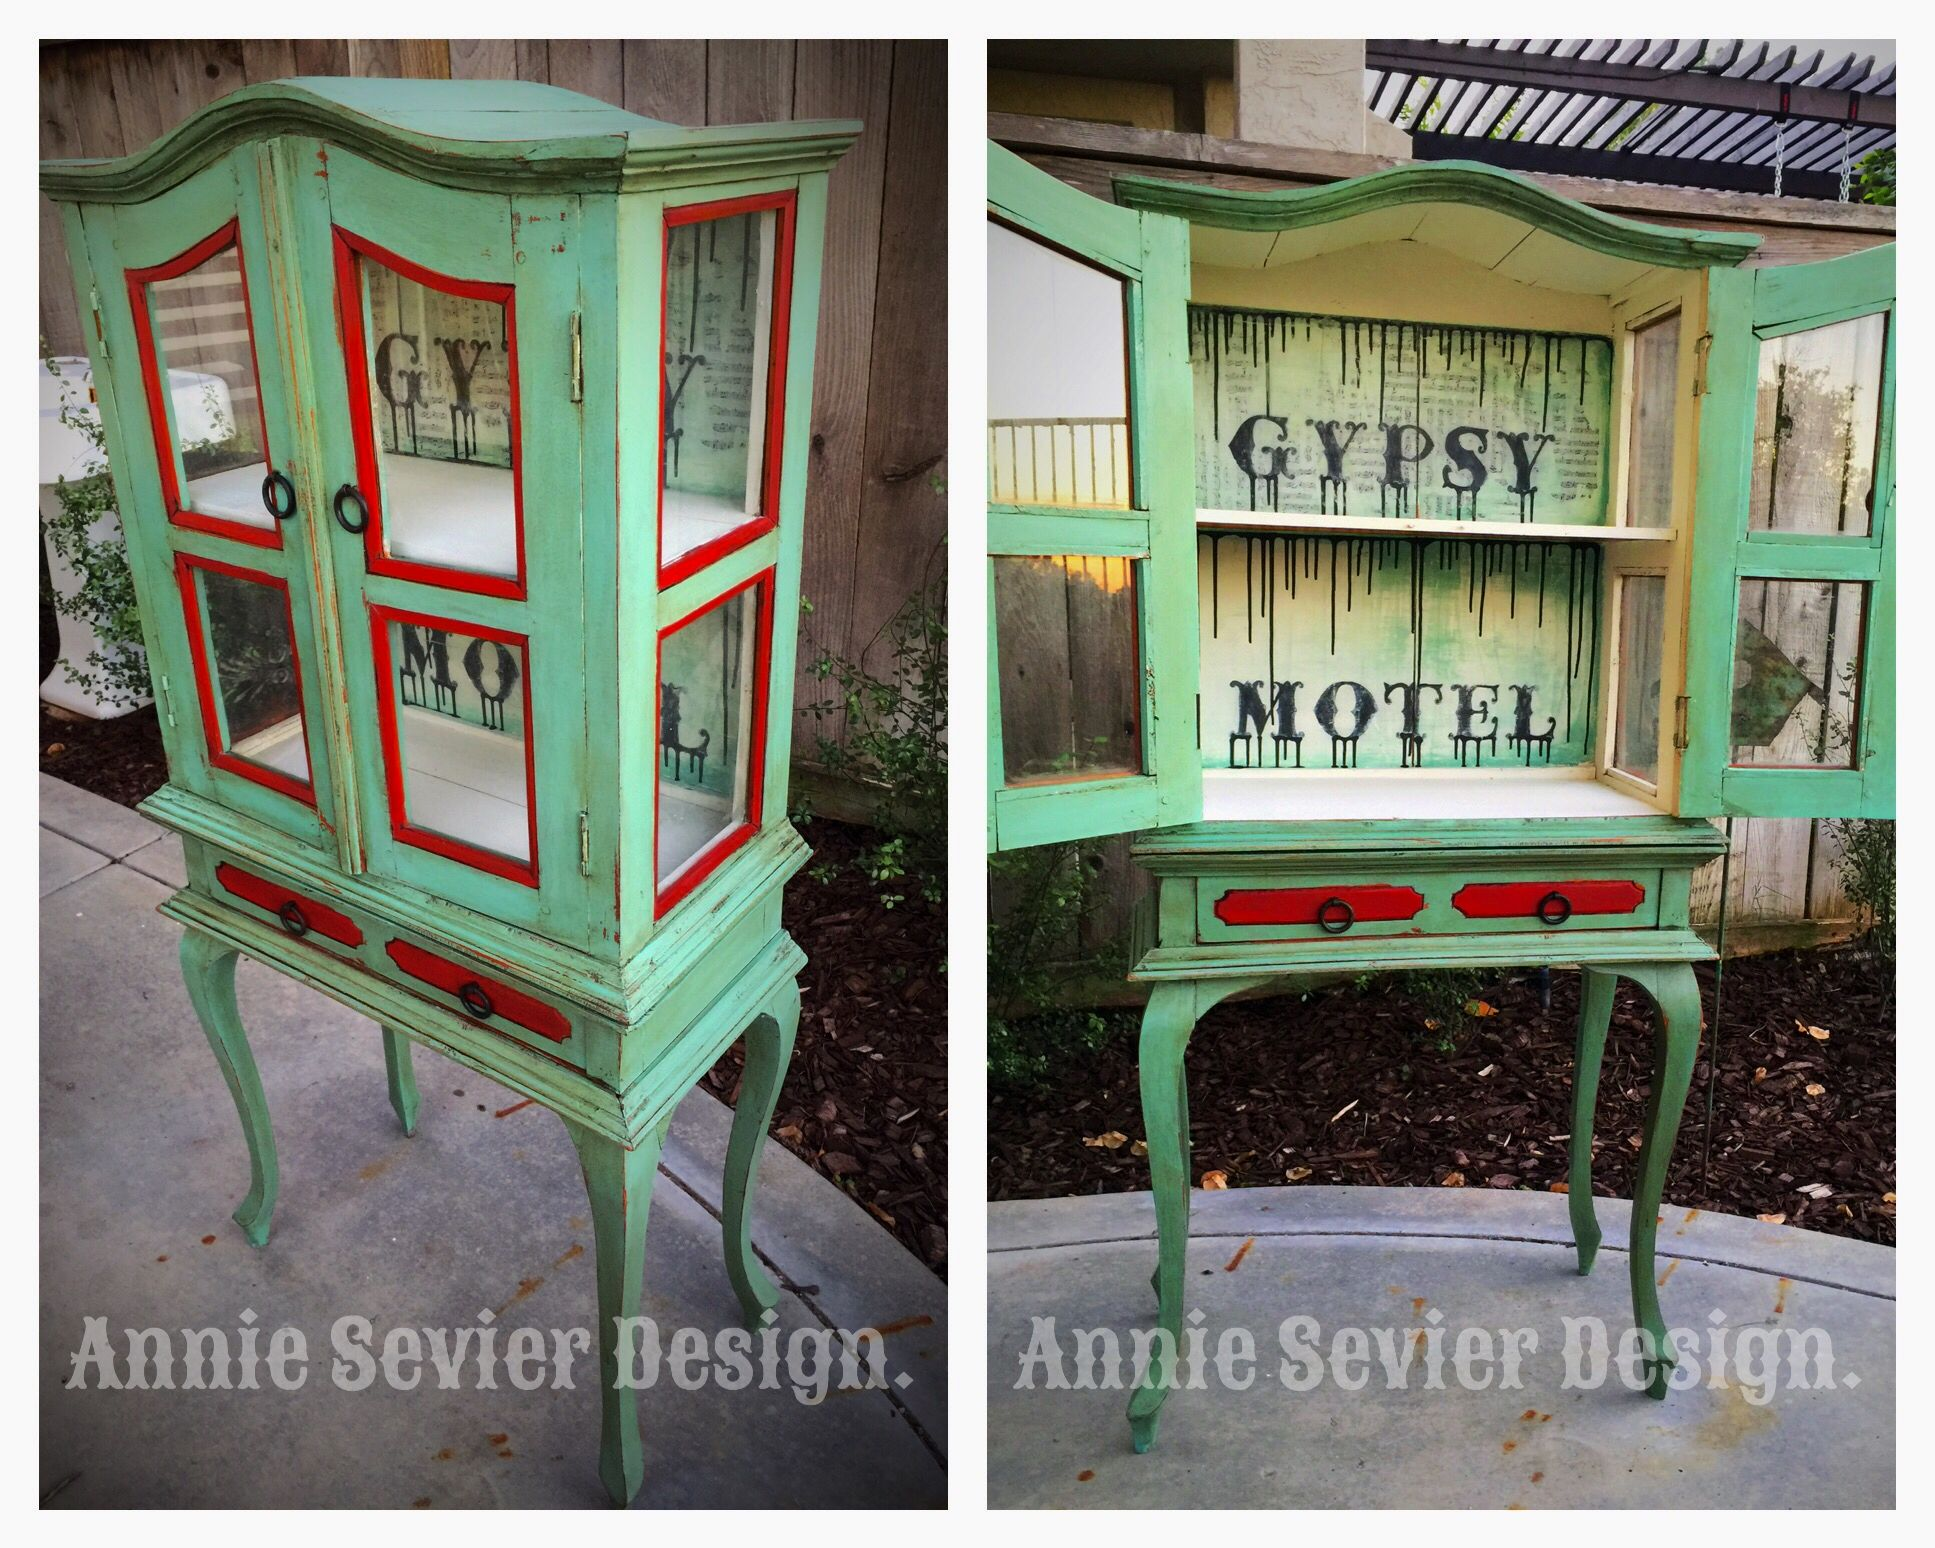 A small hutch gets a Gypsy/ Boho makeover. Cute little display case painted with Plaster Paint, Debi's DIY Paint and sealed with Annie Sloan Wax. #anniesevierdesign #boho #gypsy #chalkpaint #vintage